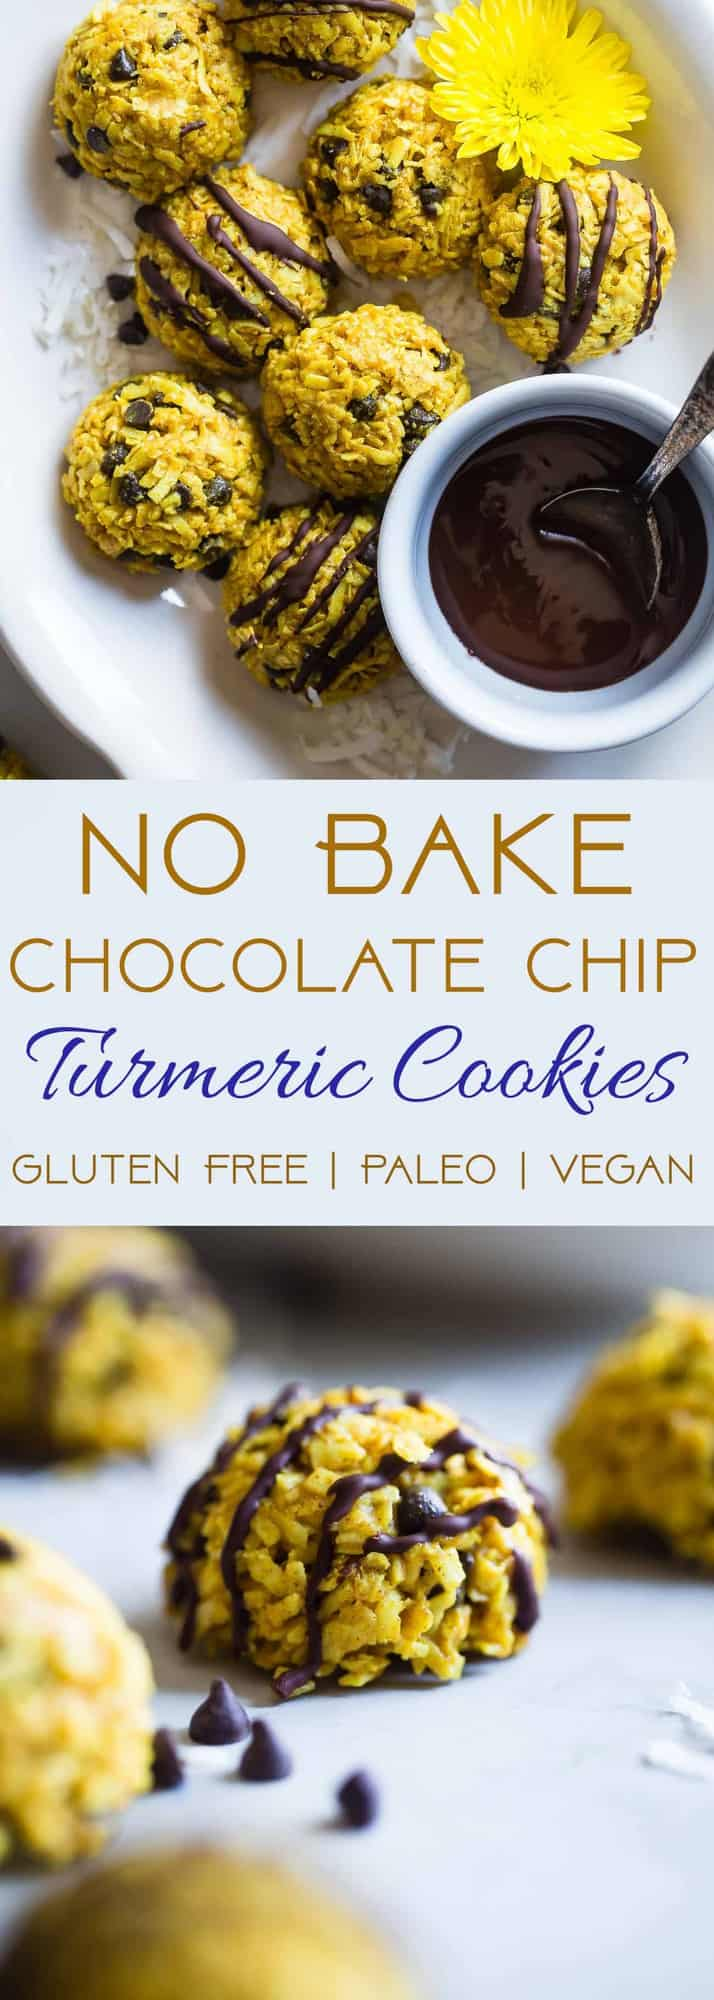 No Bake Turmeric Almond Coconut Macaroons - These easy, 6 ingredient cookieshave addicting spicy-sweet flavors from turmeric, almond butter and chocolate chips! They're a paleo, vegan and gluten free treat that is secretly anti-inflammatory! | #Foodfaithfitness | #Paleo #Vegan #Glutenfree #Dairyfree #Healthy